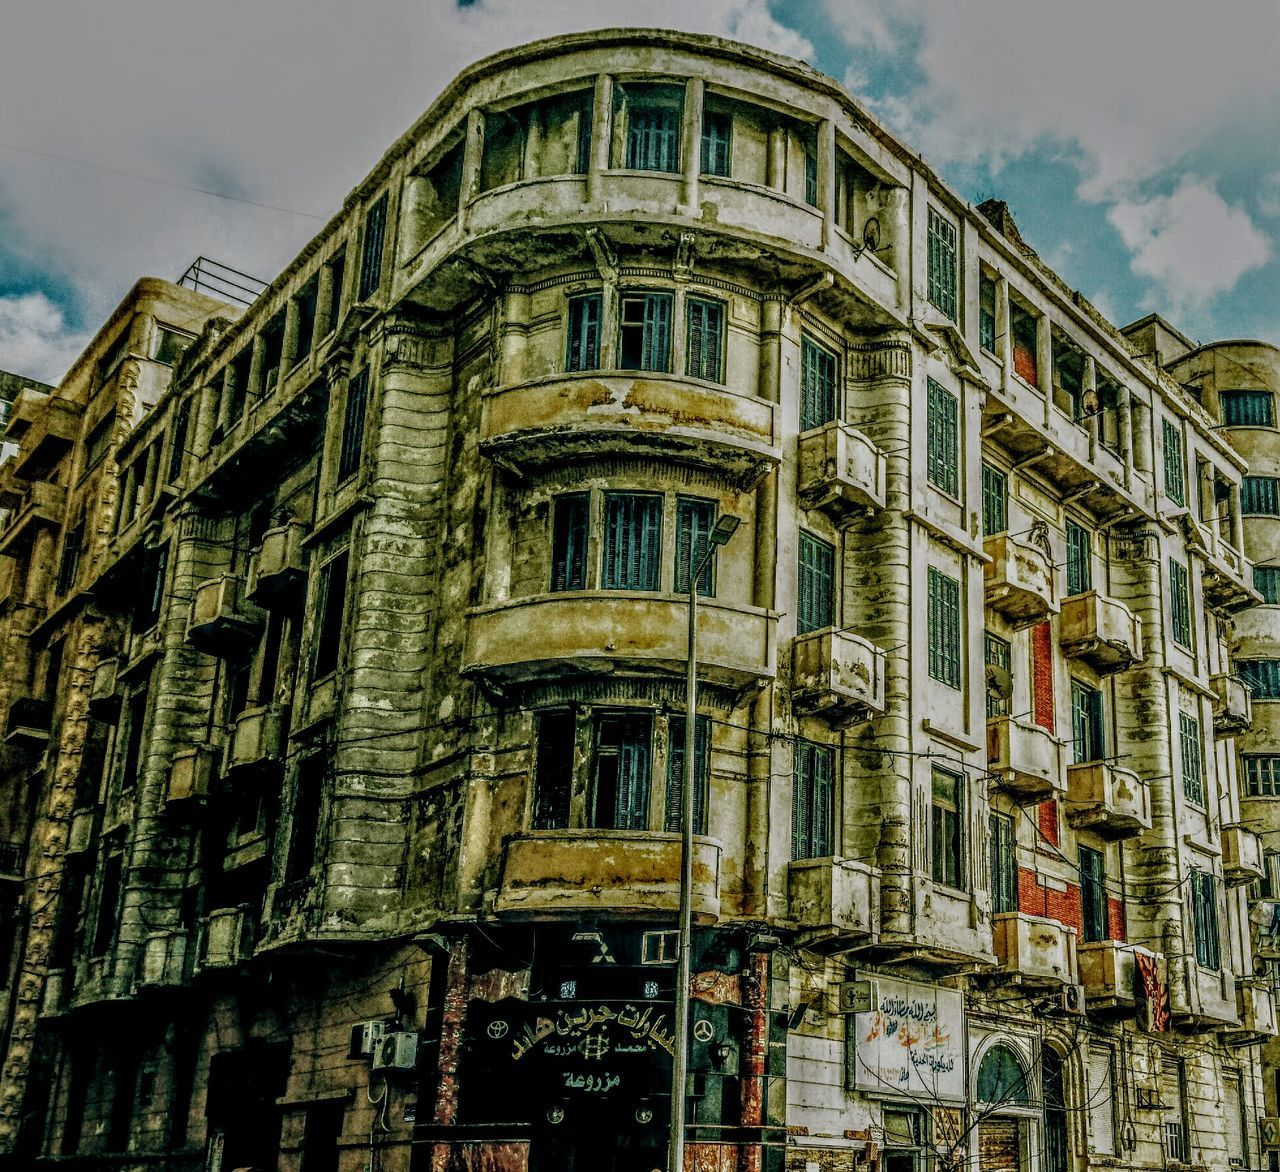 Architecture Building Exterior Window Low Angle View Built Structure No People Sky Outdoors History City Day Sketchy Classic Architecture Old Alexandria Residential Building Old Architecture Sketchyshots Architecture EyeEmNewHere Eyeemphotography Alexandria Egypt